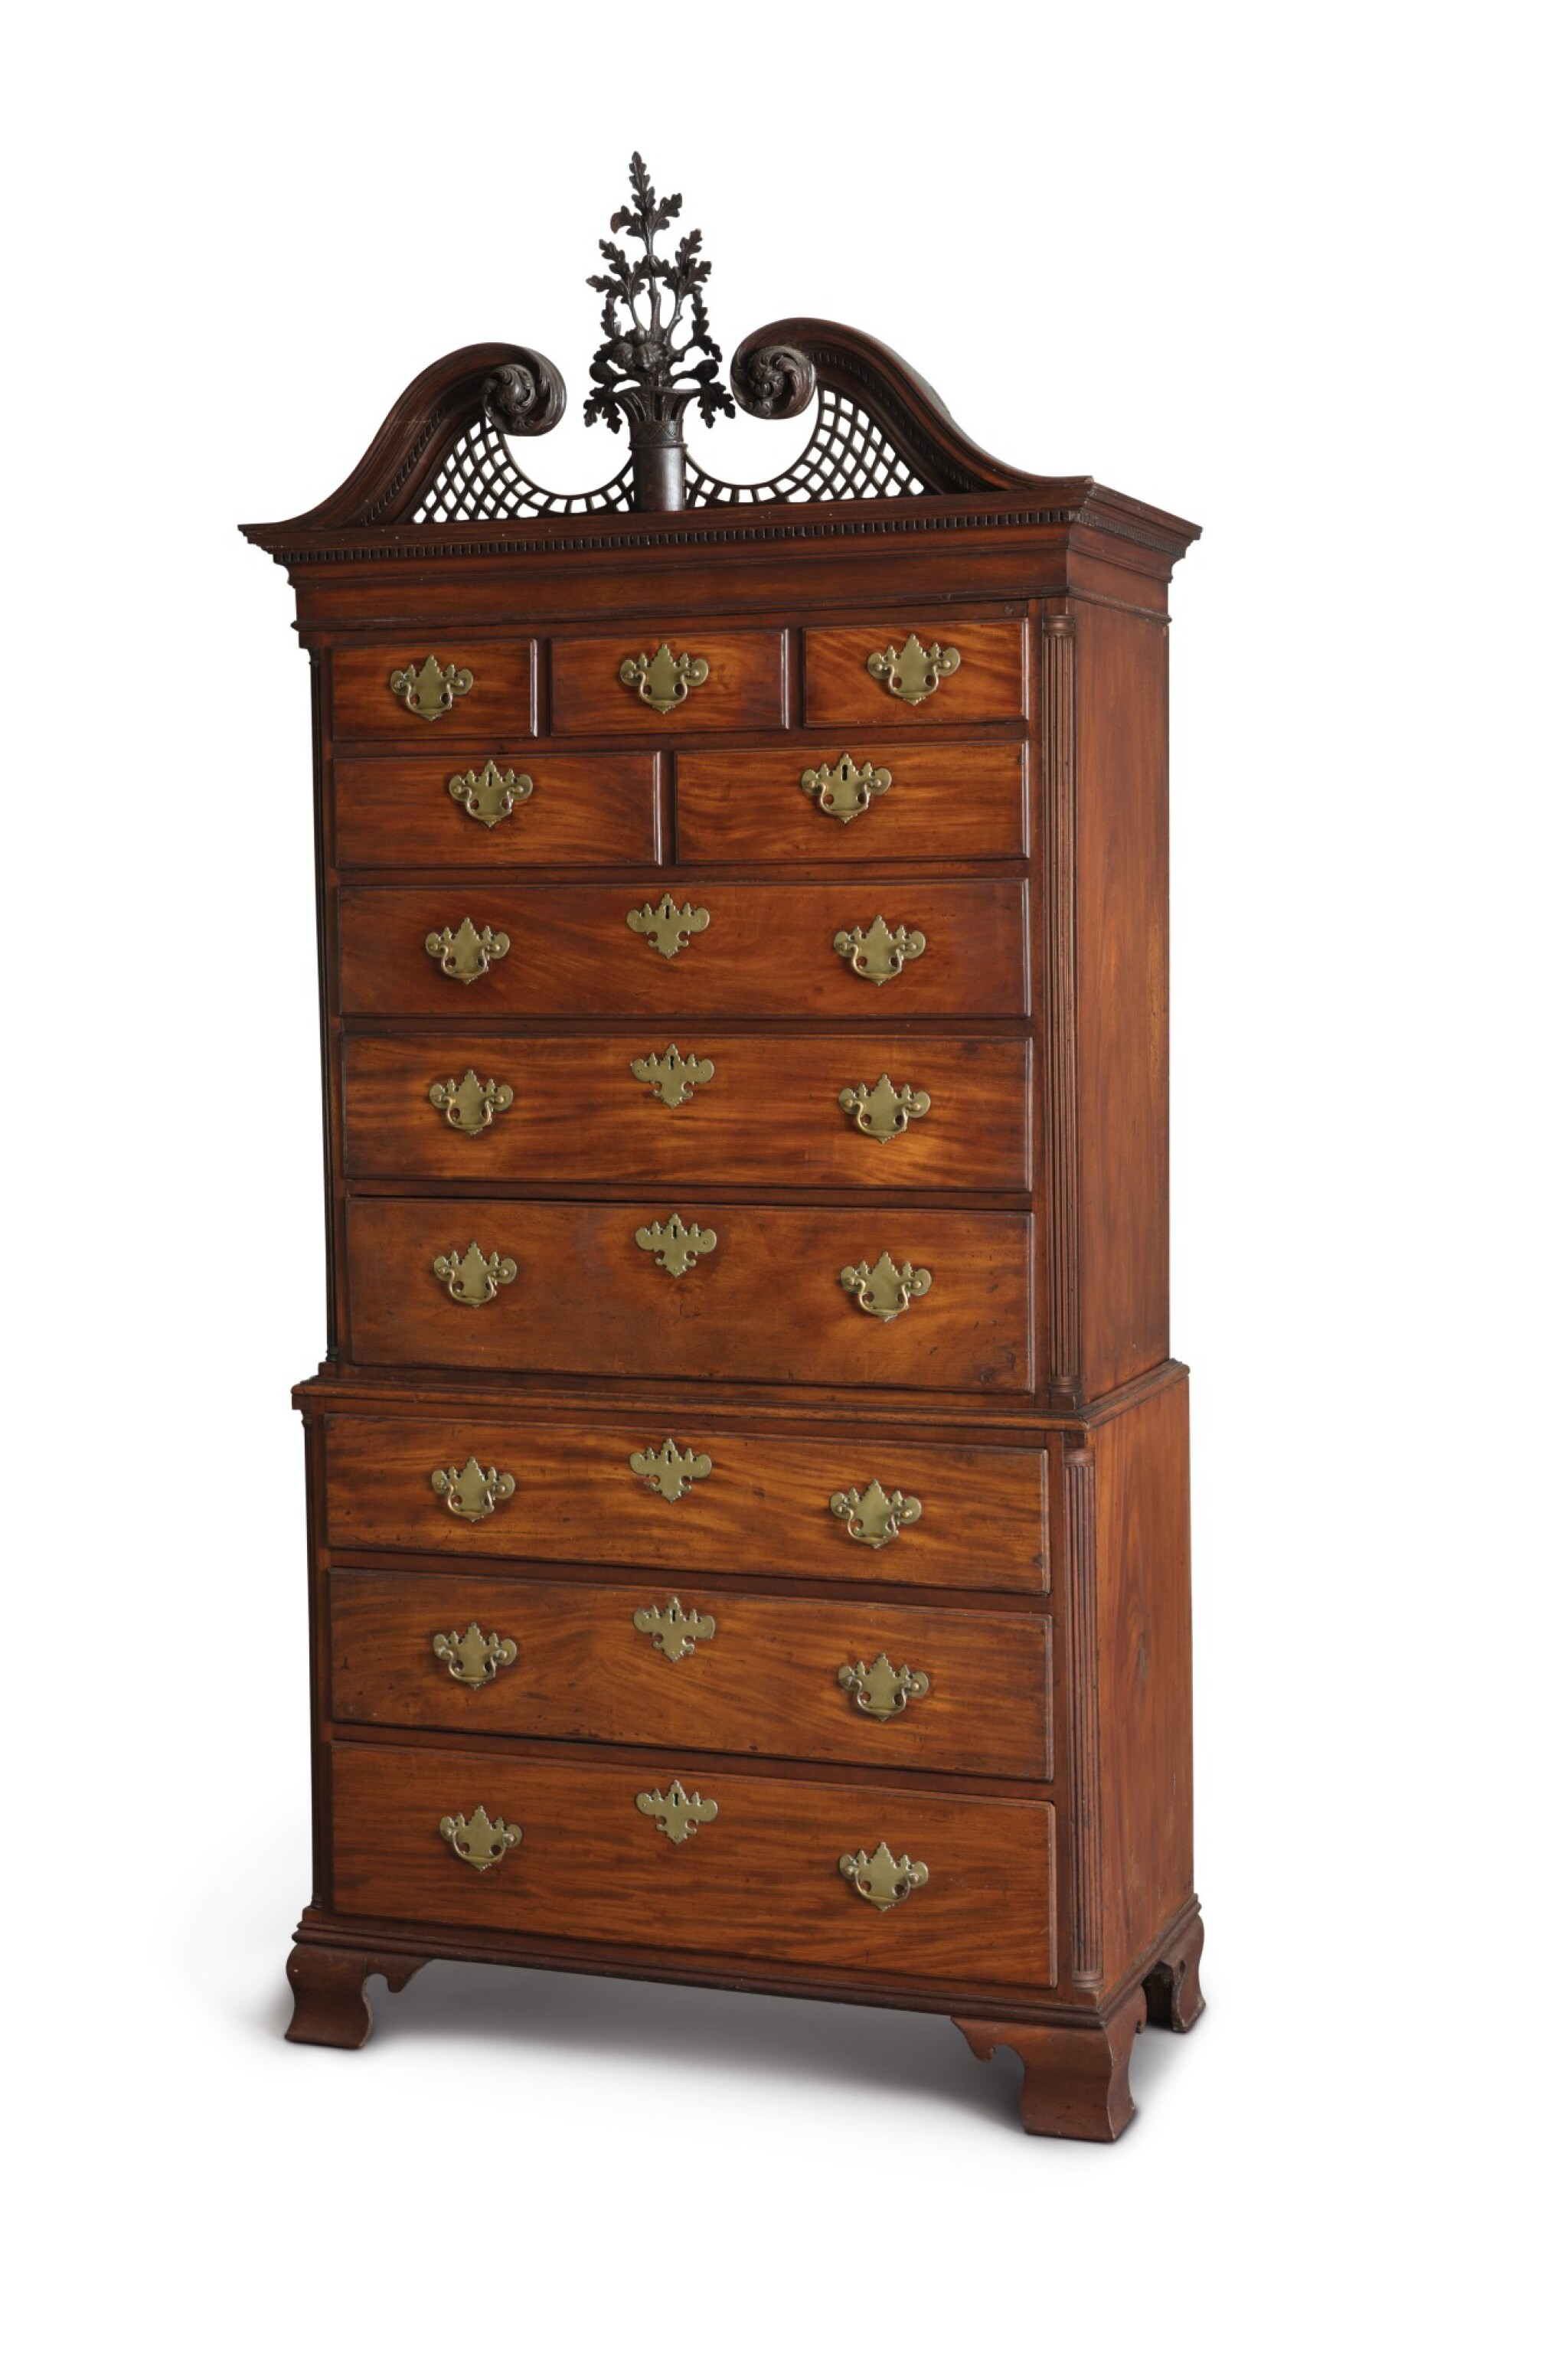 View 1 of Lot 34. The Important Stratton-Carpenter-Wheeler Family Chippendale Carved and Figured Mahogany Chest-on-Chest, cabinetwork attributed to John Folwell (w. 1762-1780); carving attributed to James Reynolds (w. 1766-1794), Philadelphia, Pennsylvania, circa 1770.